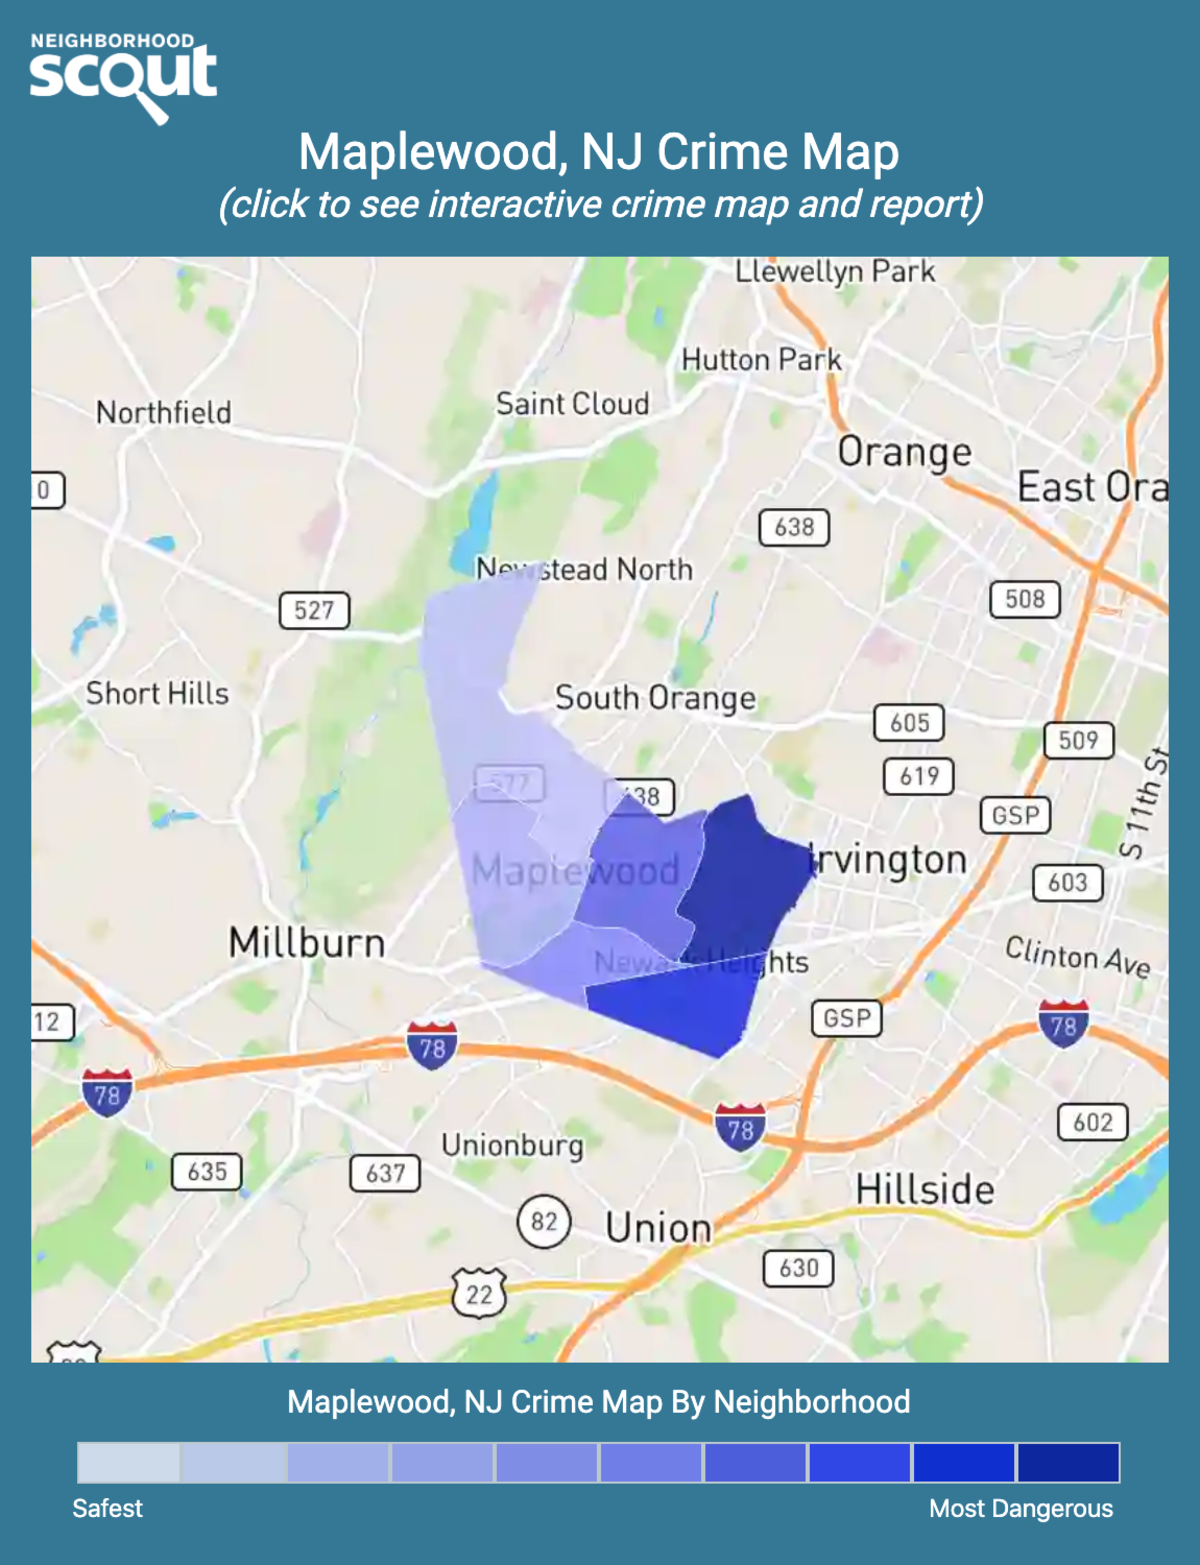 Maplewood, New Jersey crime map